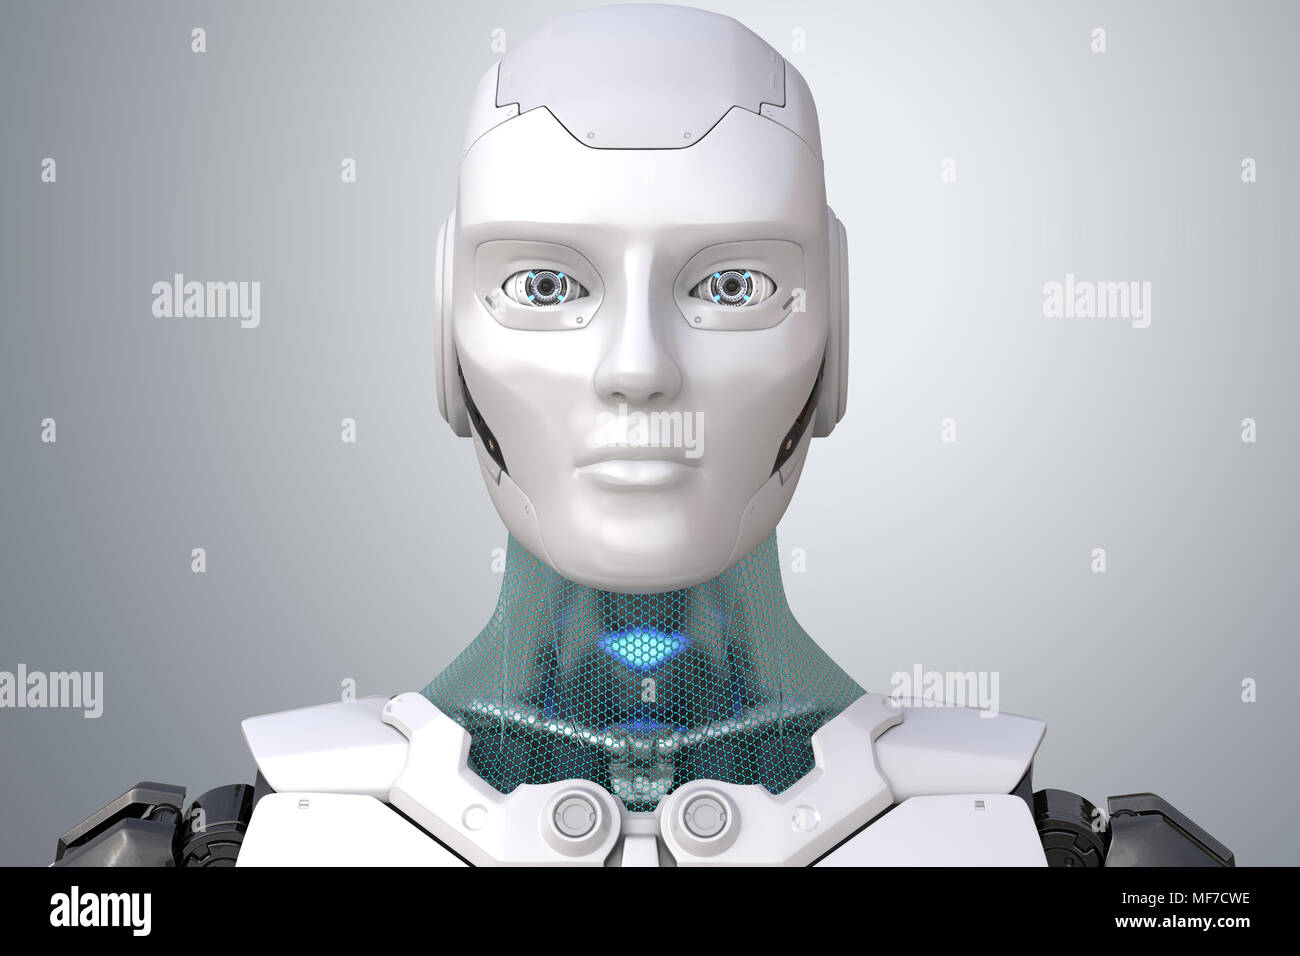 Robot's head in face. 3D illustration - Stock Image